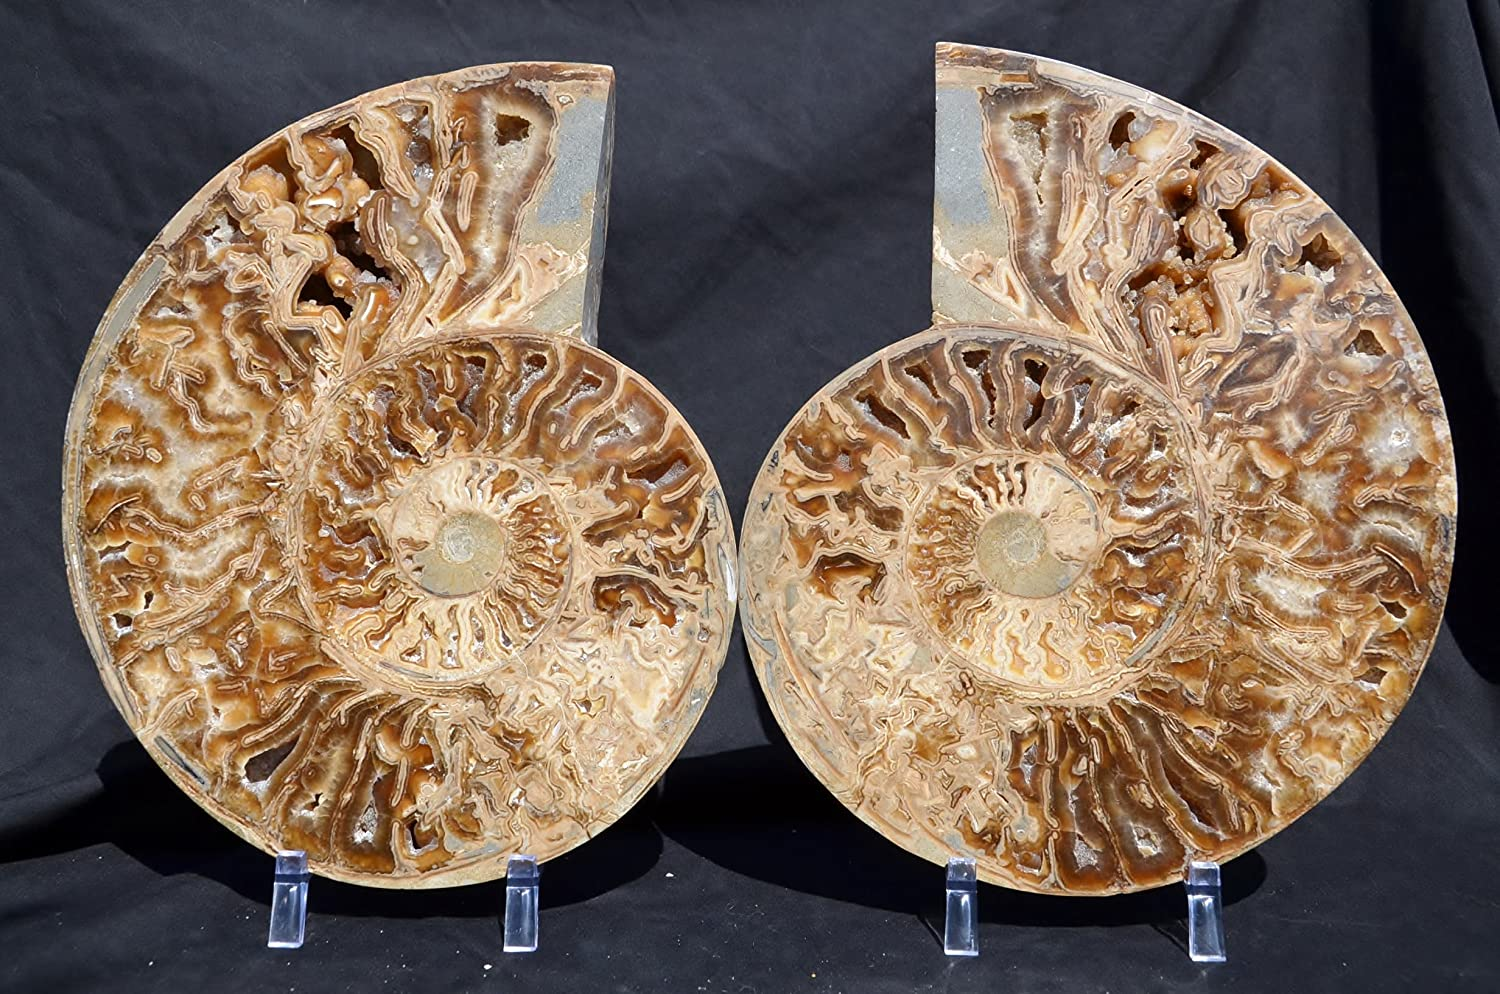 e2011x EXTREMELY Rare New Find MARGARITE Ammonite Dinosaur Fossil Pair Huge Crystals XXXLARGE 12